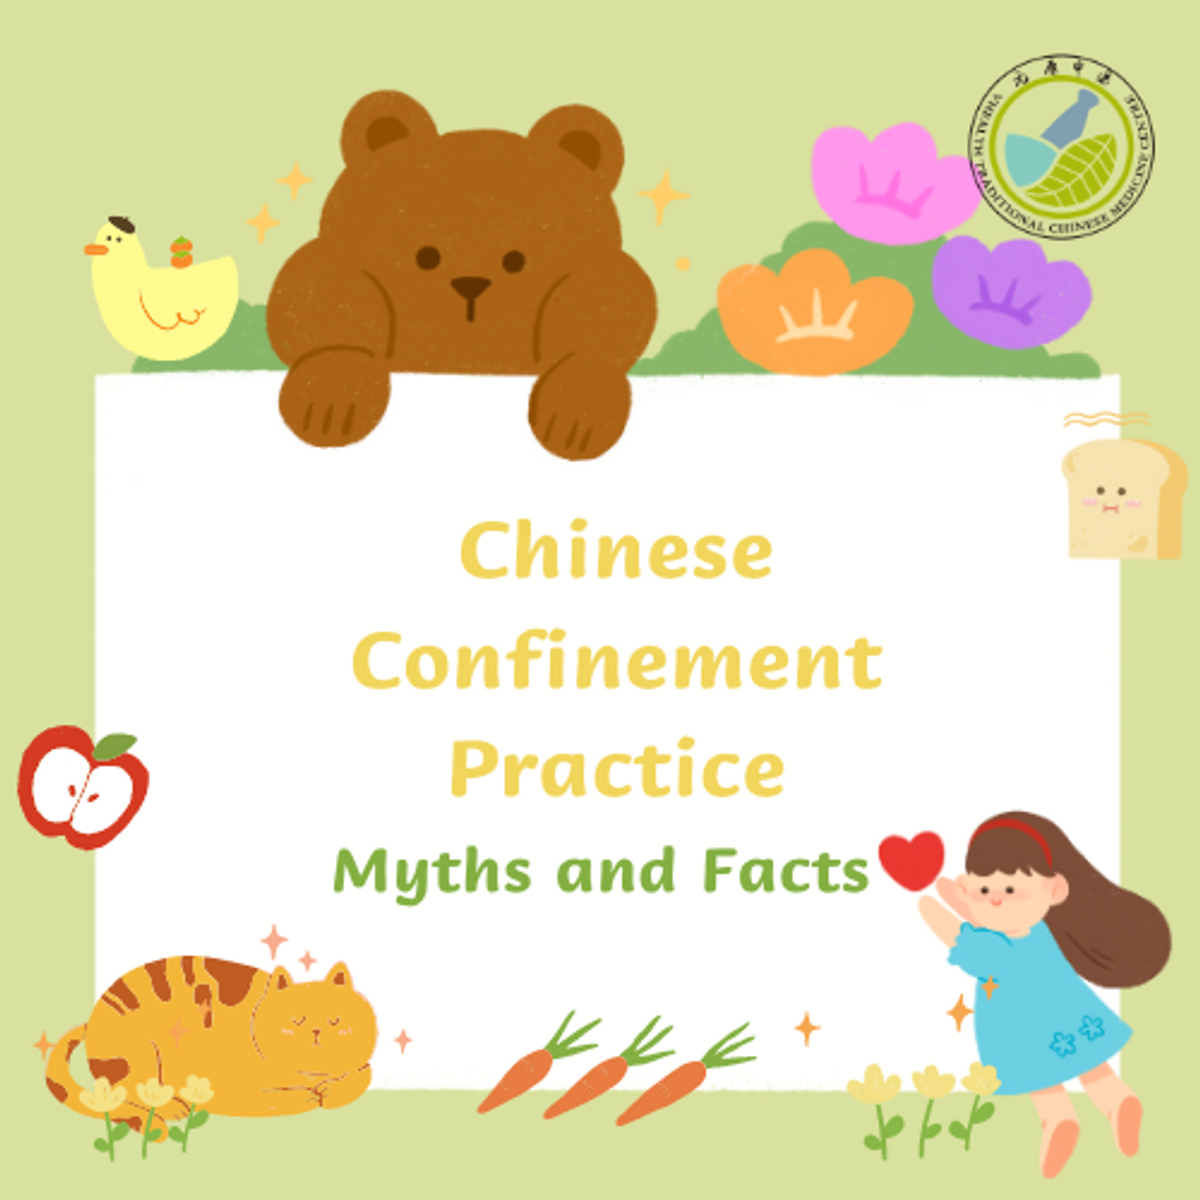 Chinese Confinement Practice: Adapting the practices for Modern Life